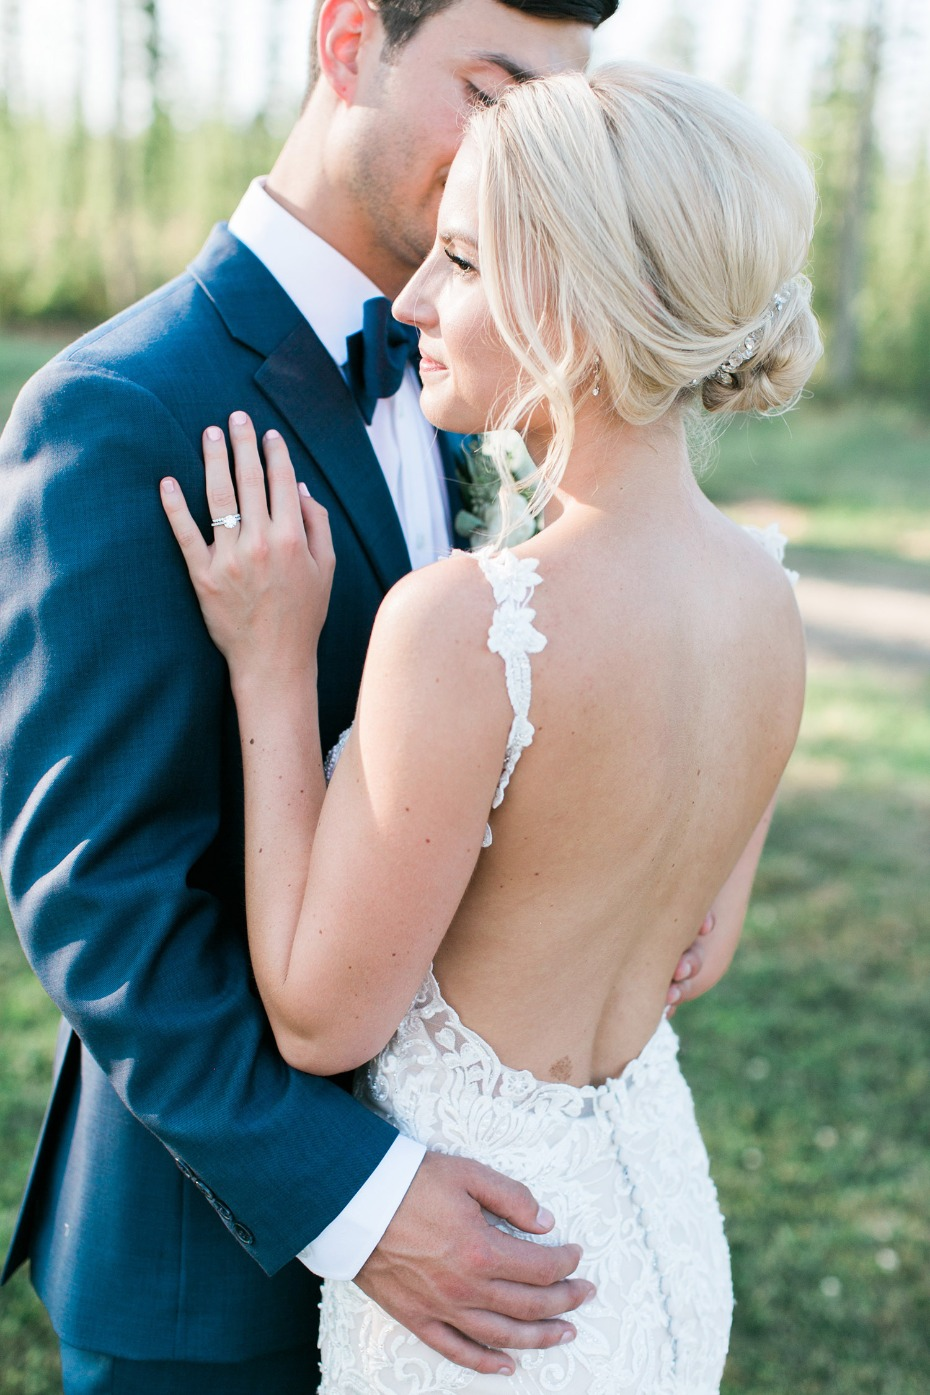 Low back wedding dress from Essense of Australia